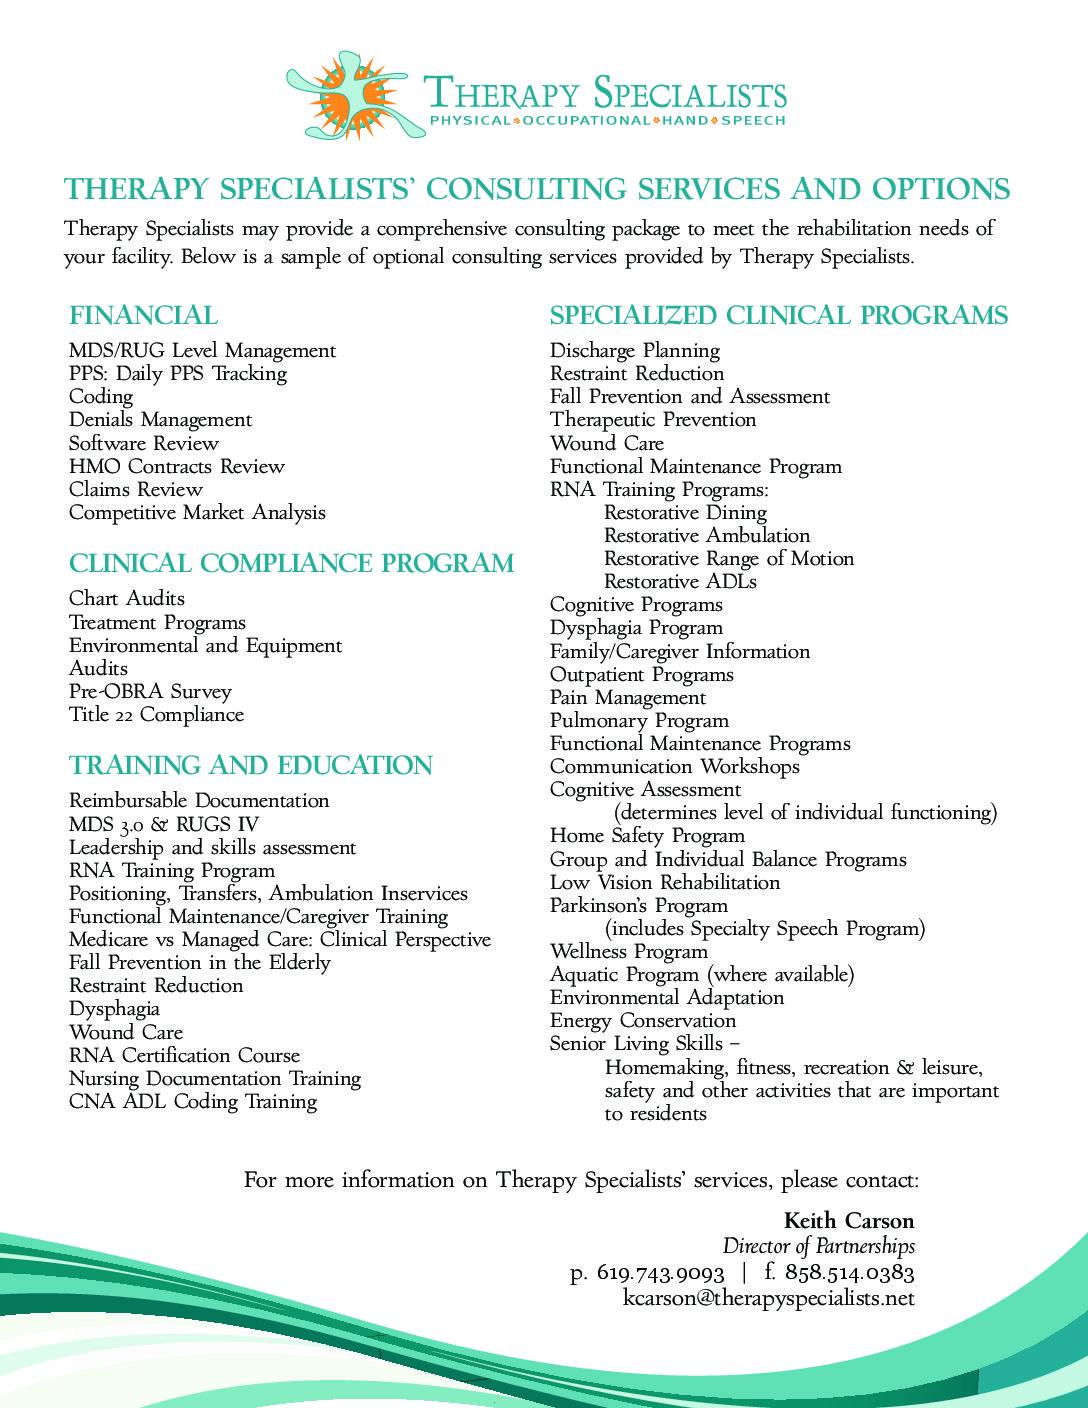 TS Consulting Services And Options Flyer 2014.02.26 1